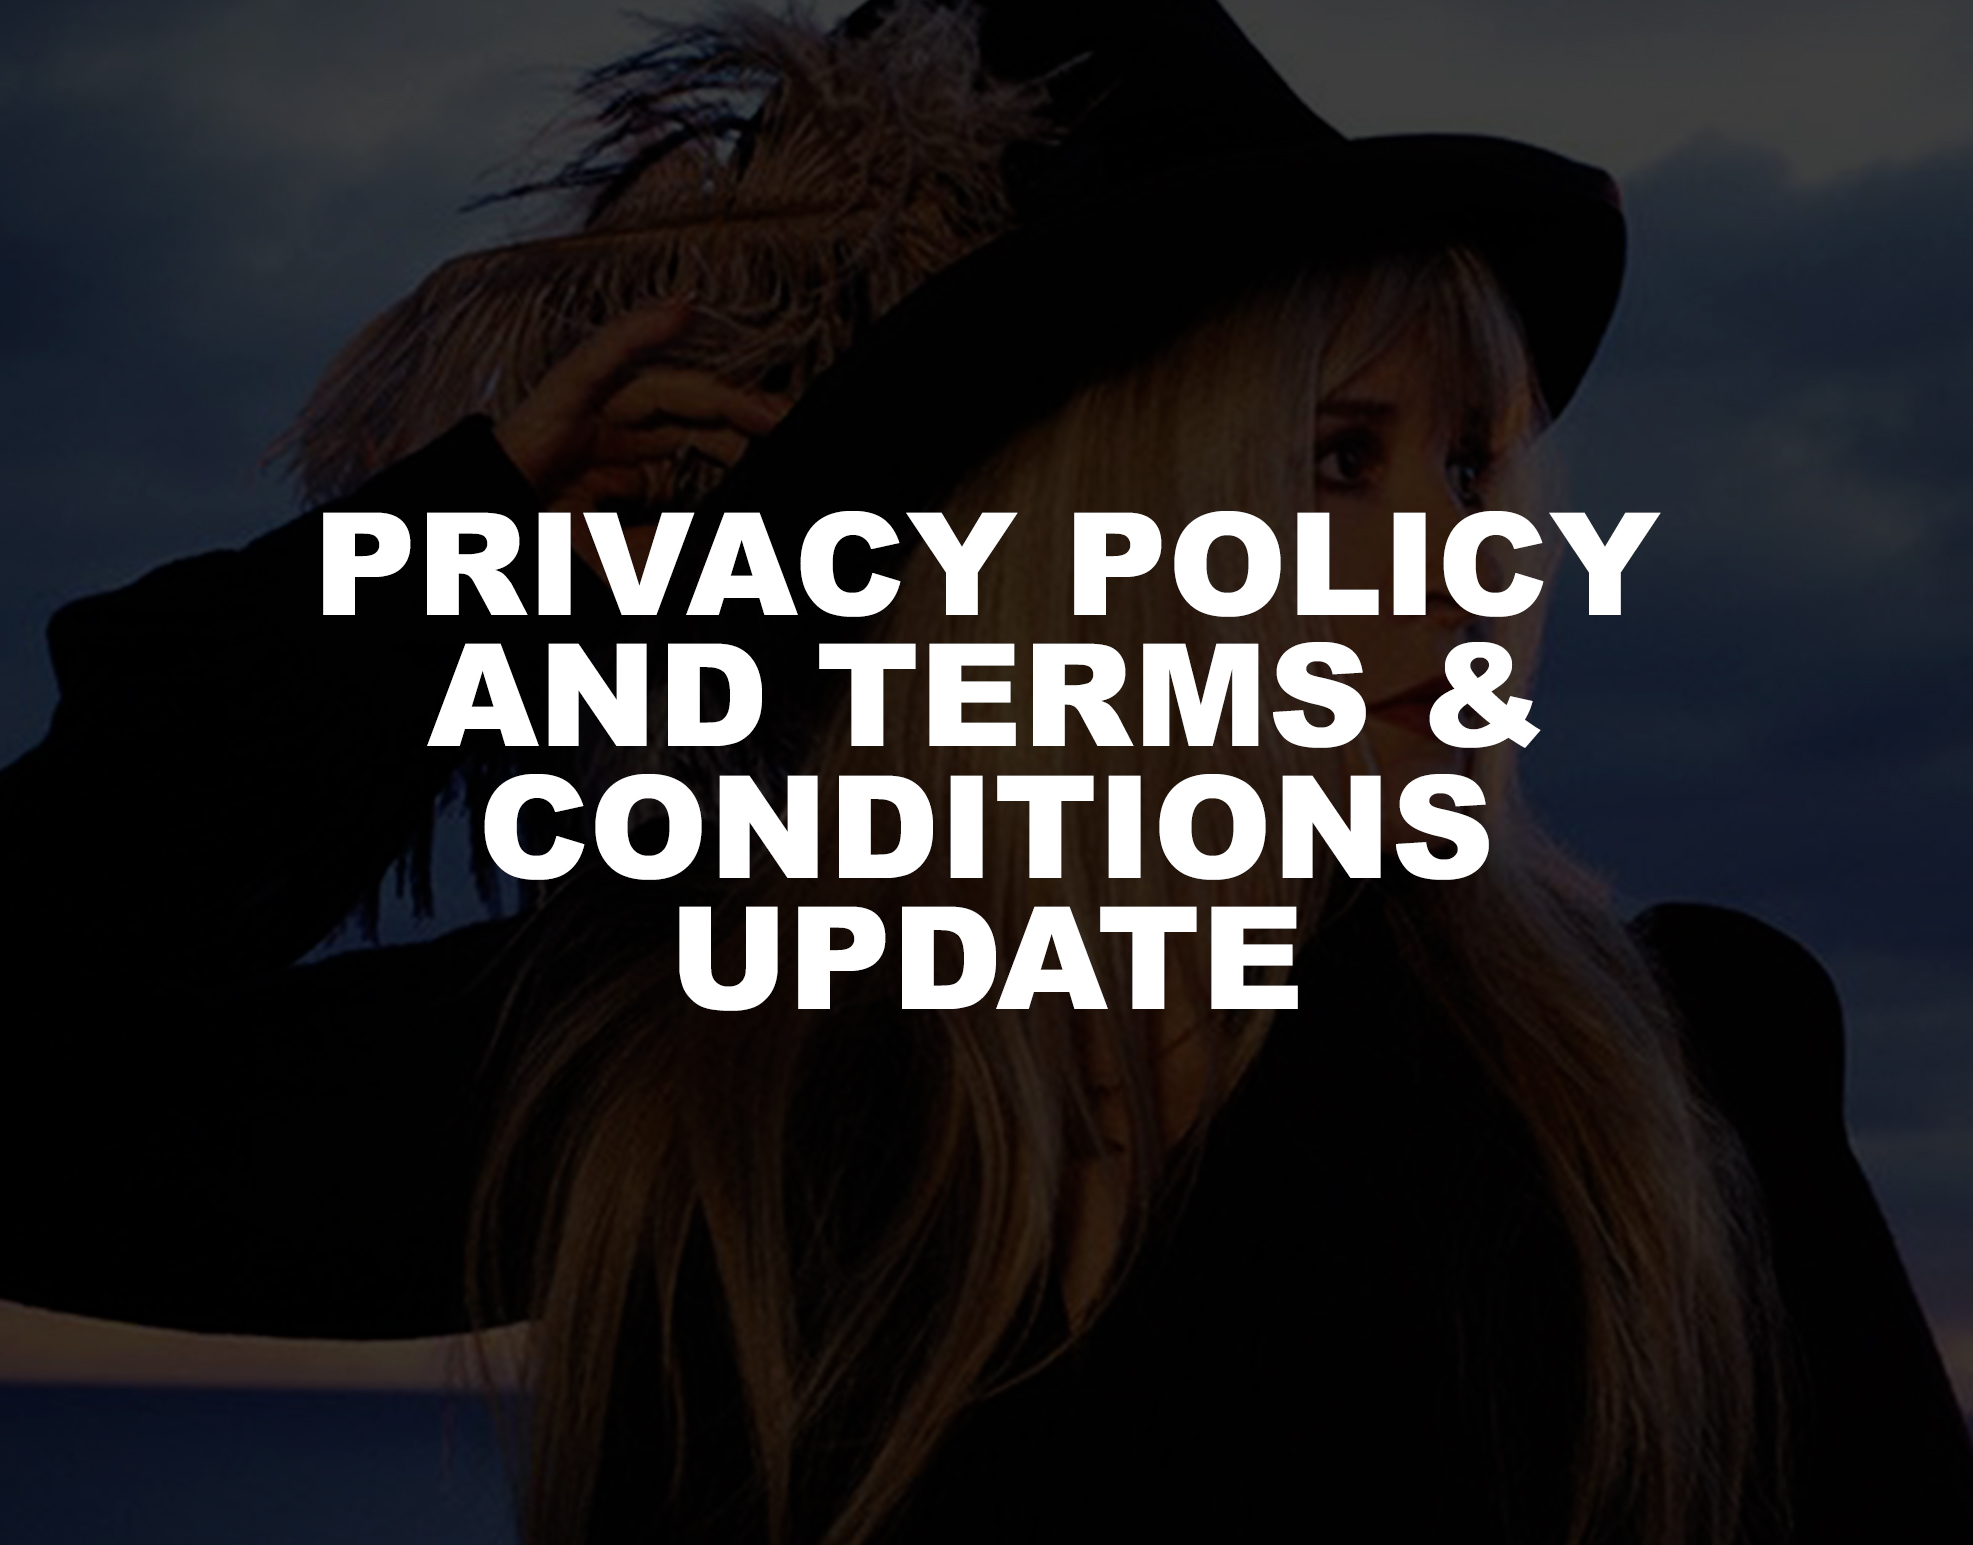 Privacy Policy and Terms & Conditions Update